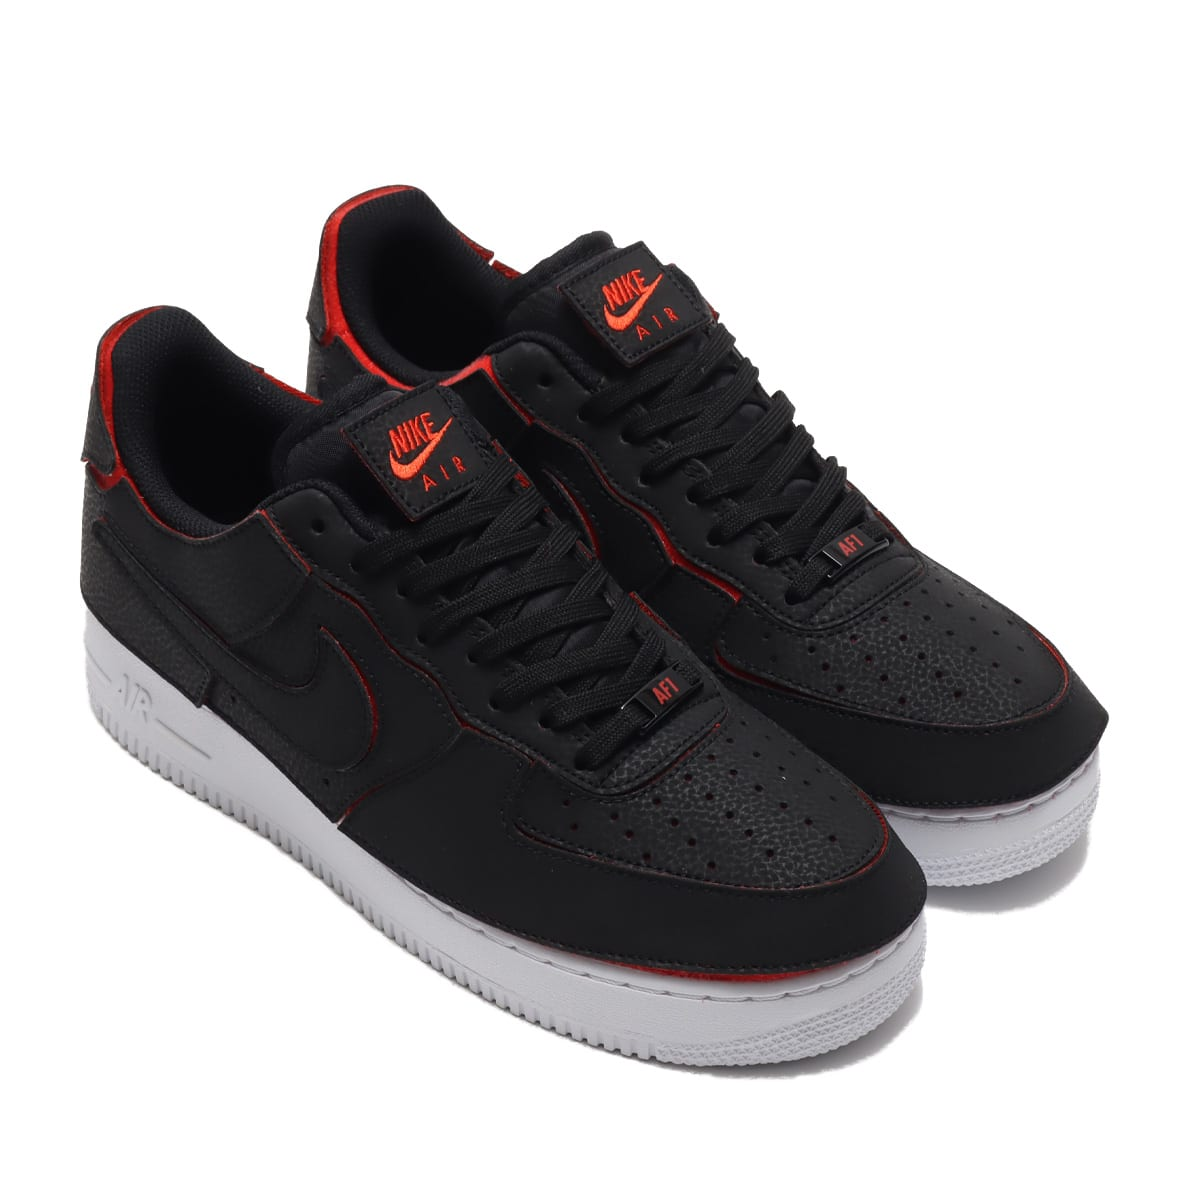 NIKE AF1/1 BLACK/BLACK-CHILE RED-PINE GREEN 21SP-I_photo_large